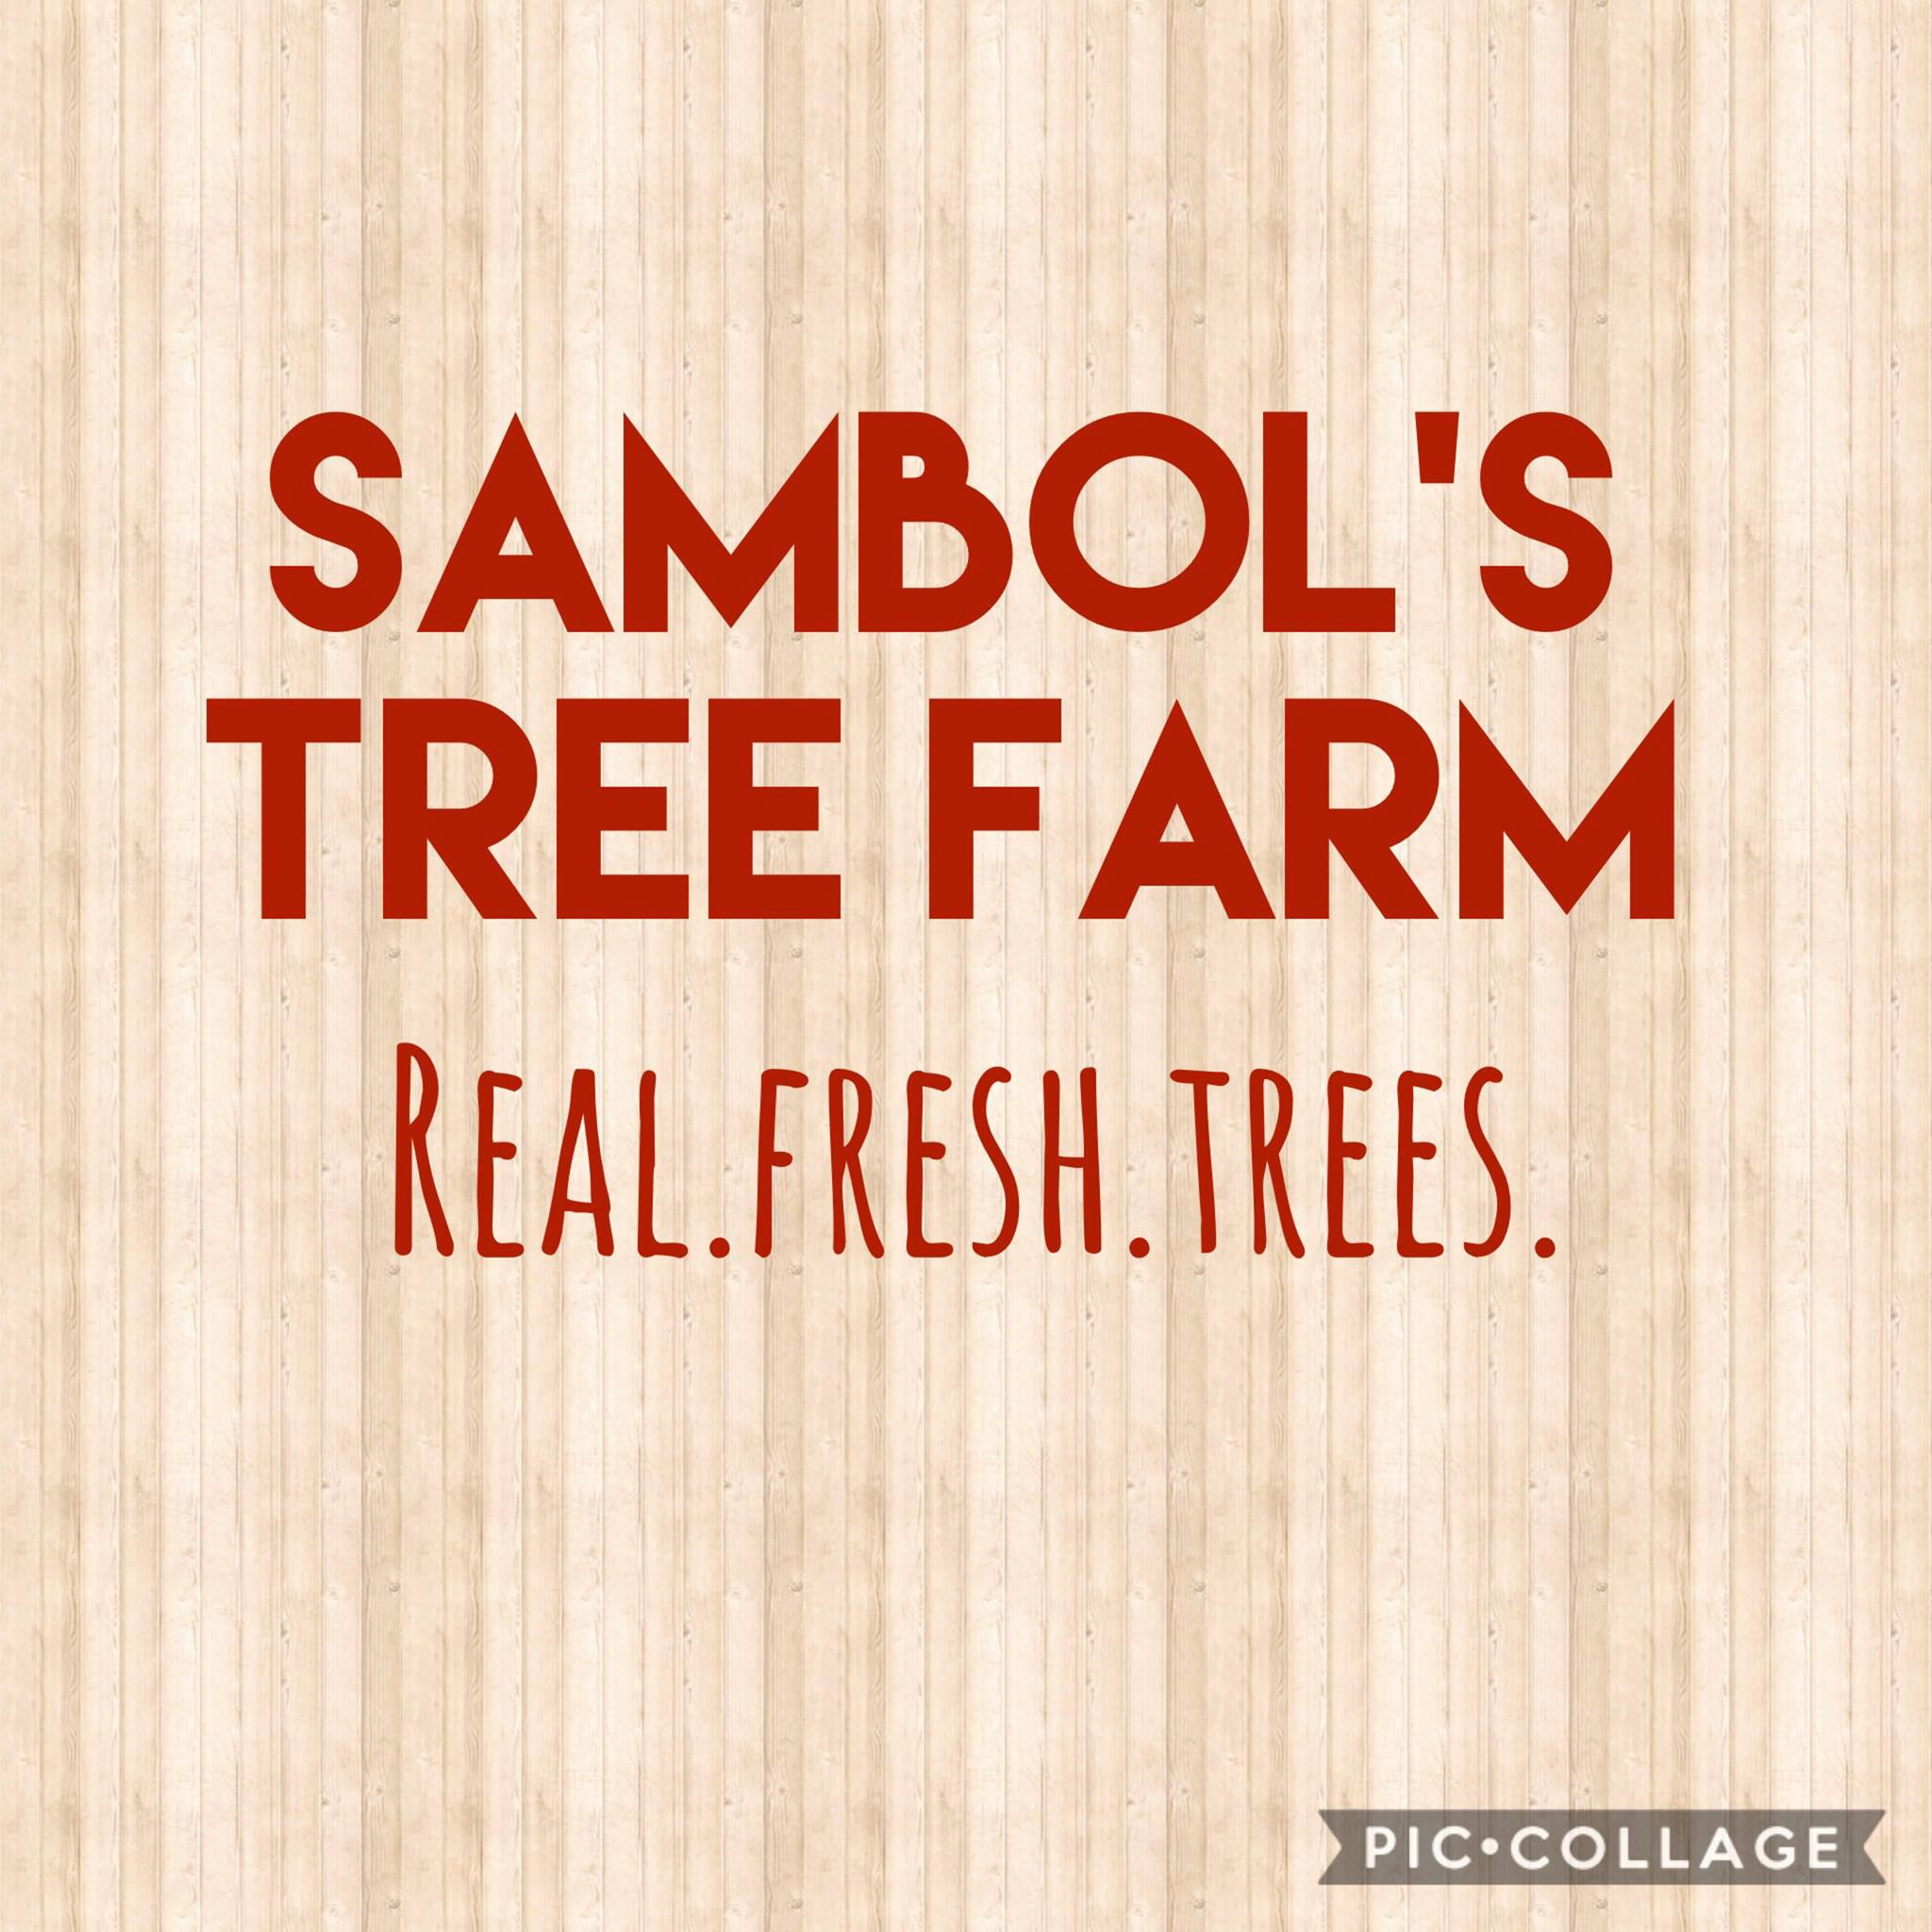 Sambol's Tree Farm logo